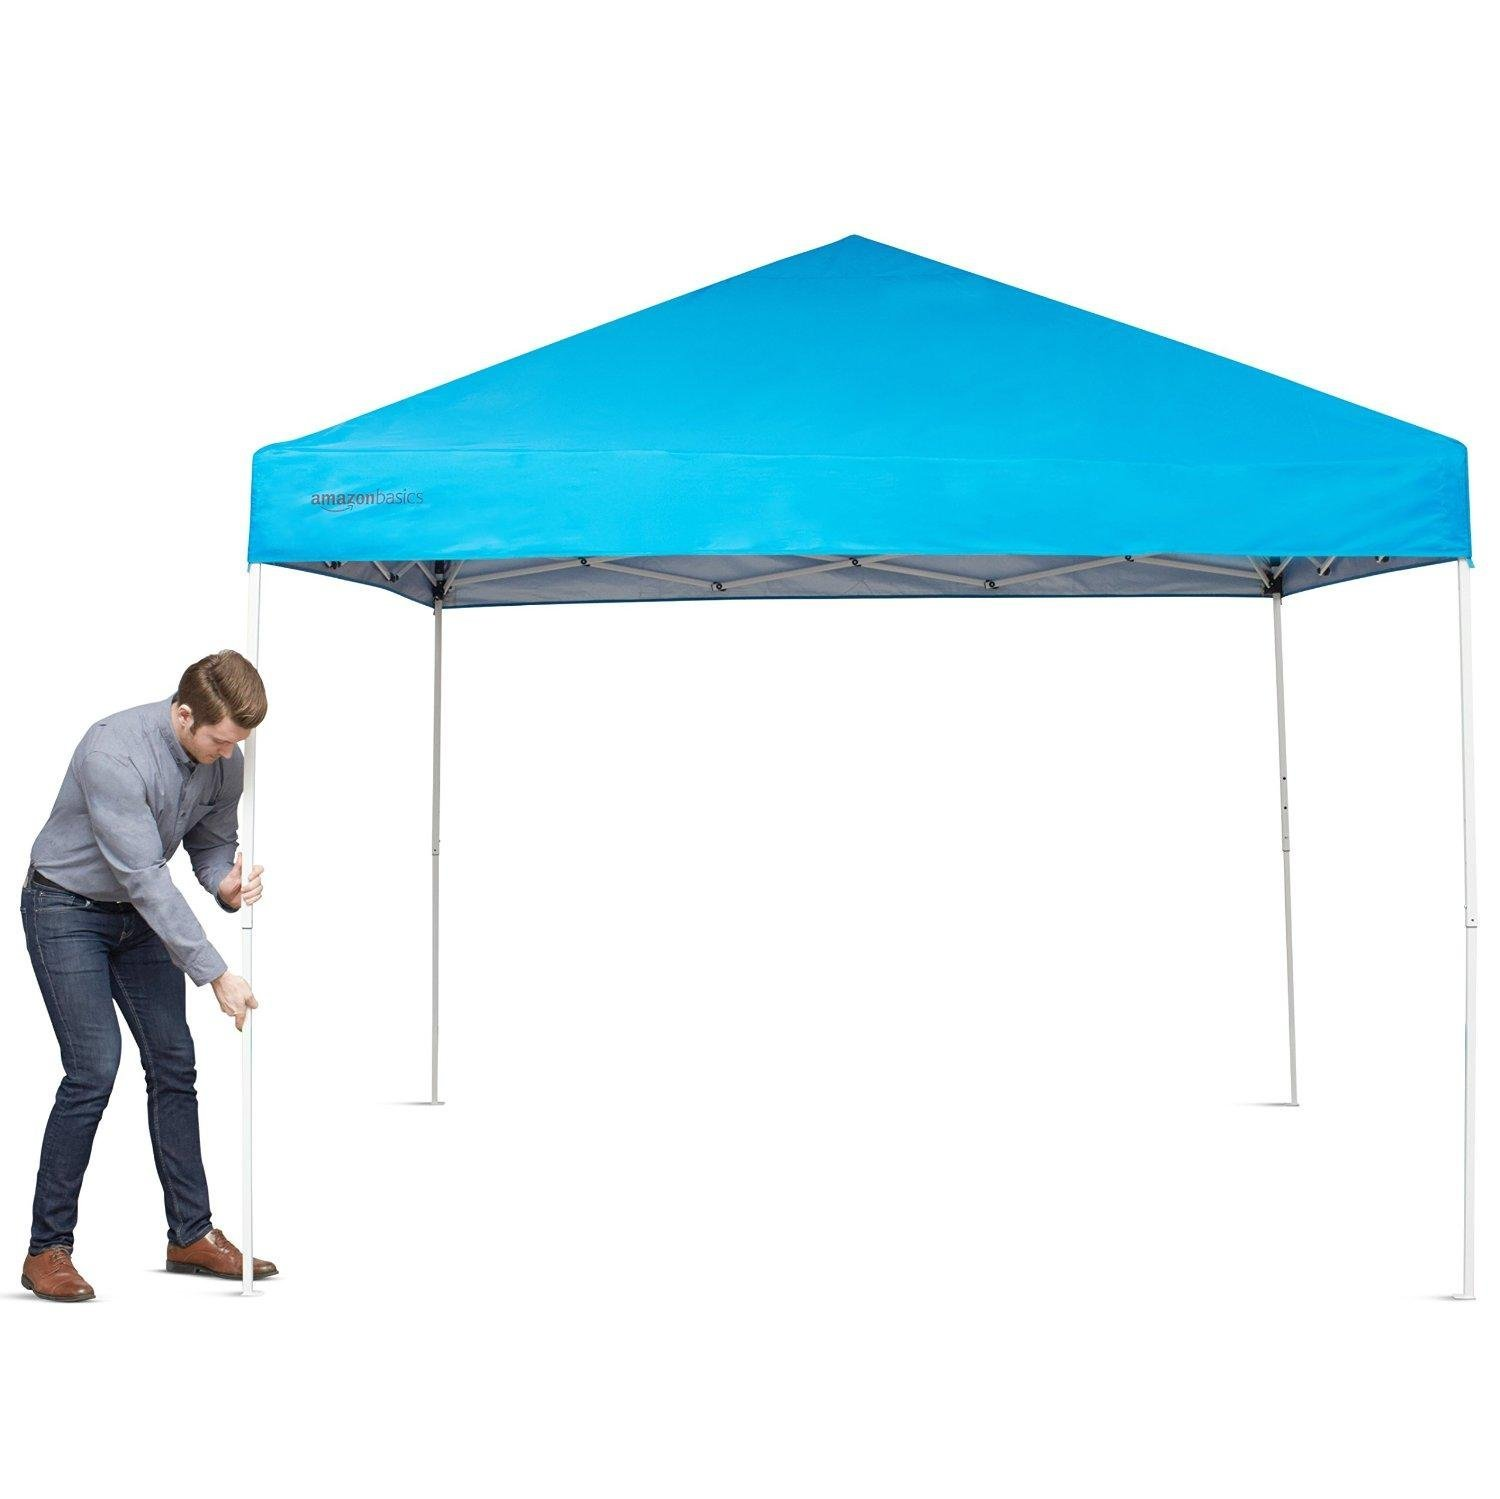 AmazonBasics Pop-Up Canopy Tent 10 x 10 ft  sc 1 st  Amazon.com & Amazon.com : AmazonBasics Pop-Up Canopy Tent - 10u0027 x 10u0027 Blue ...